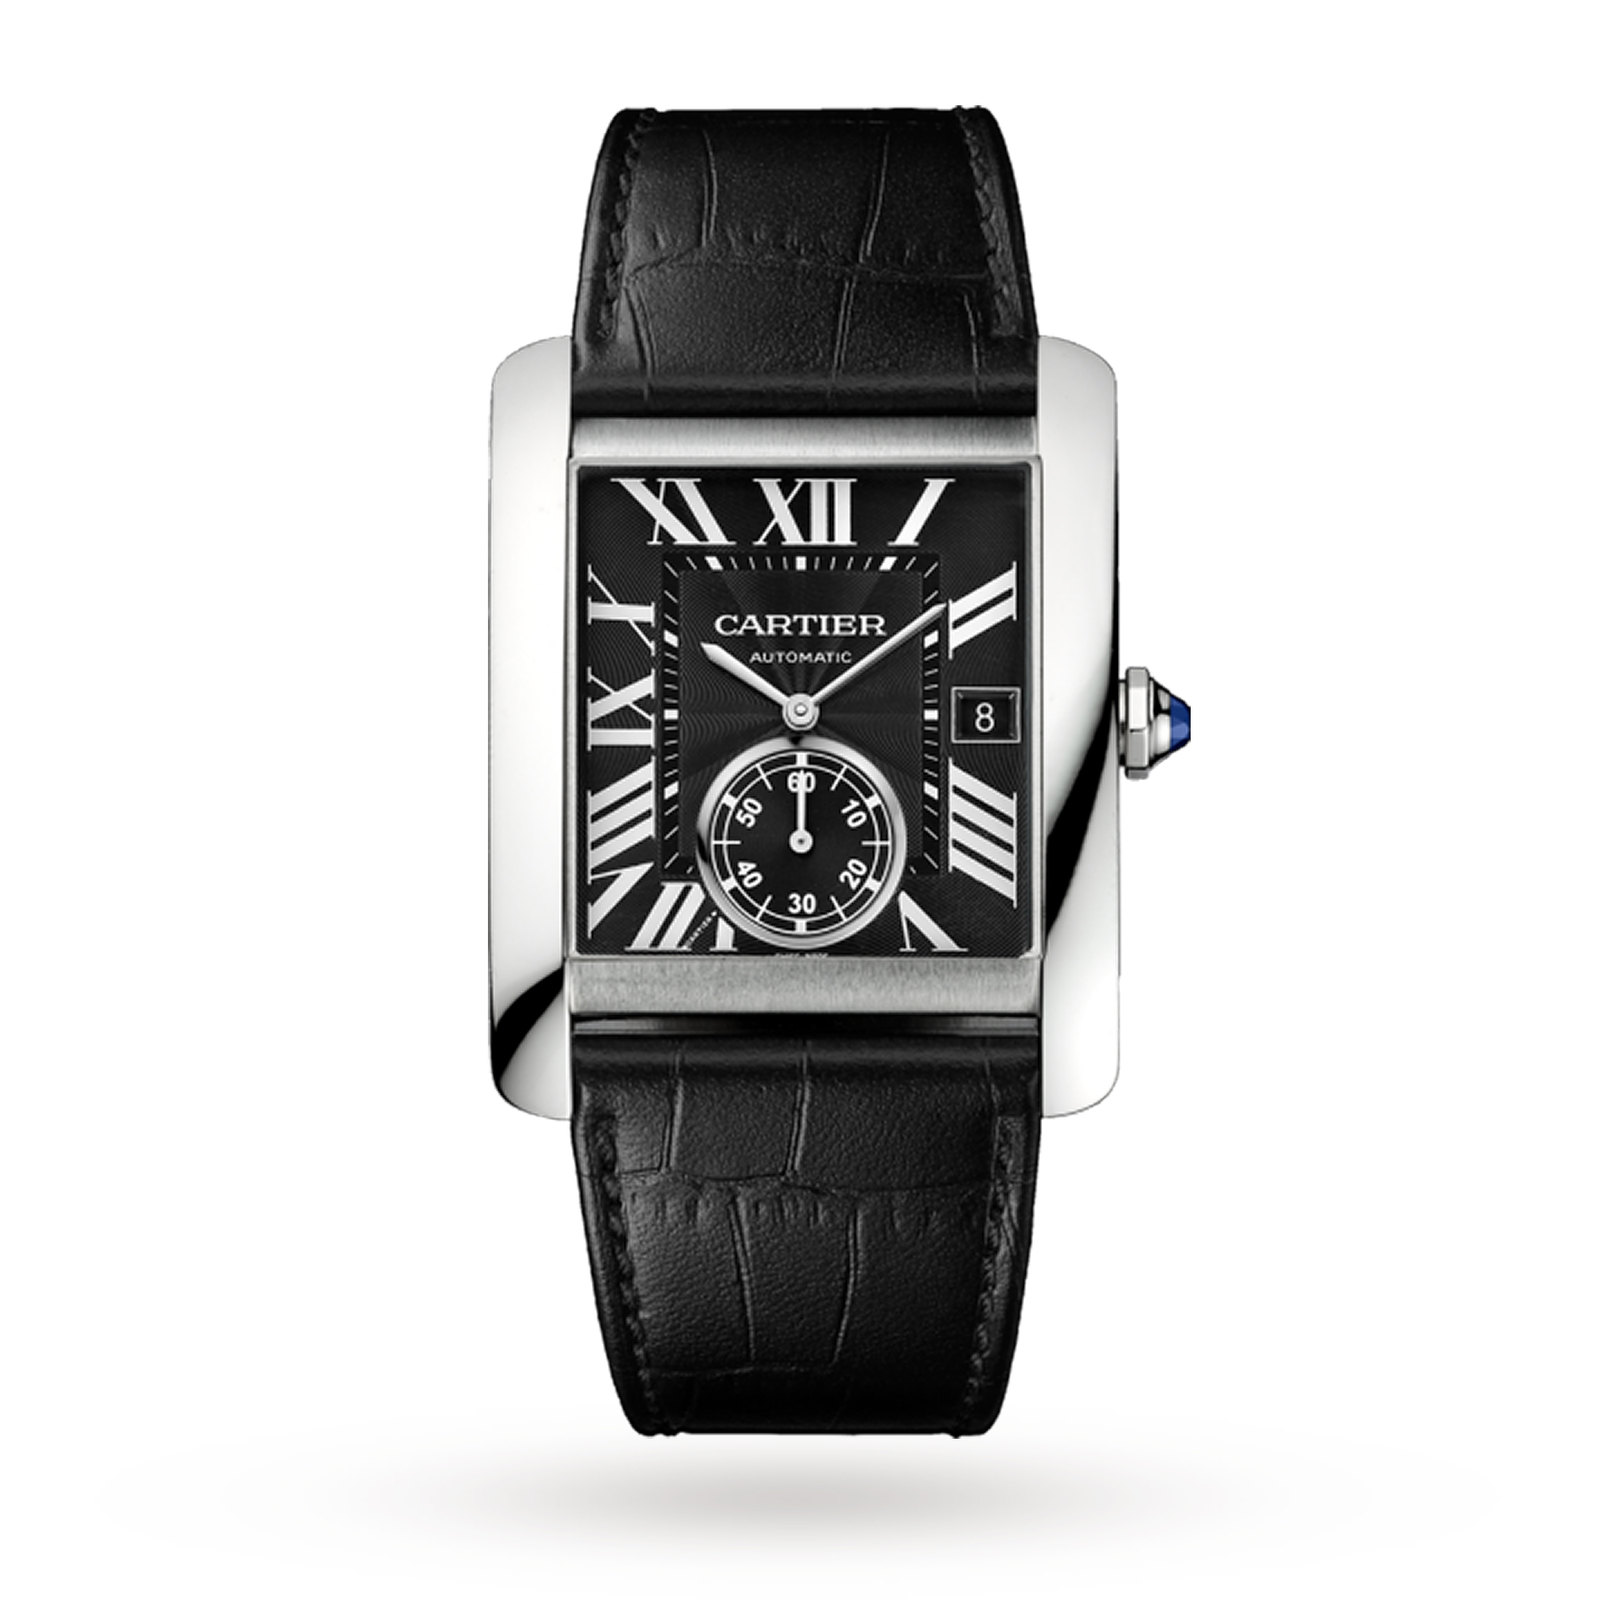 watch aise fran p luxury tank watches cartier medium model